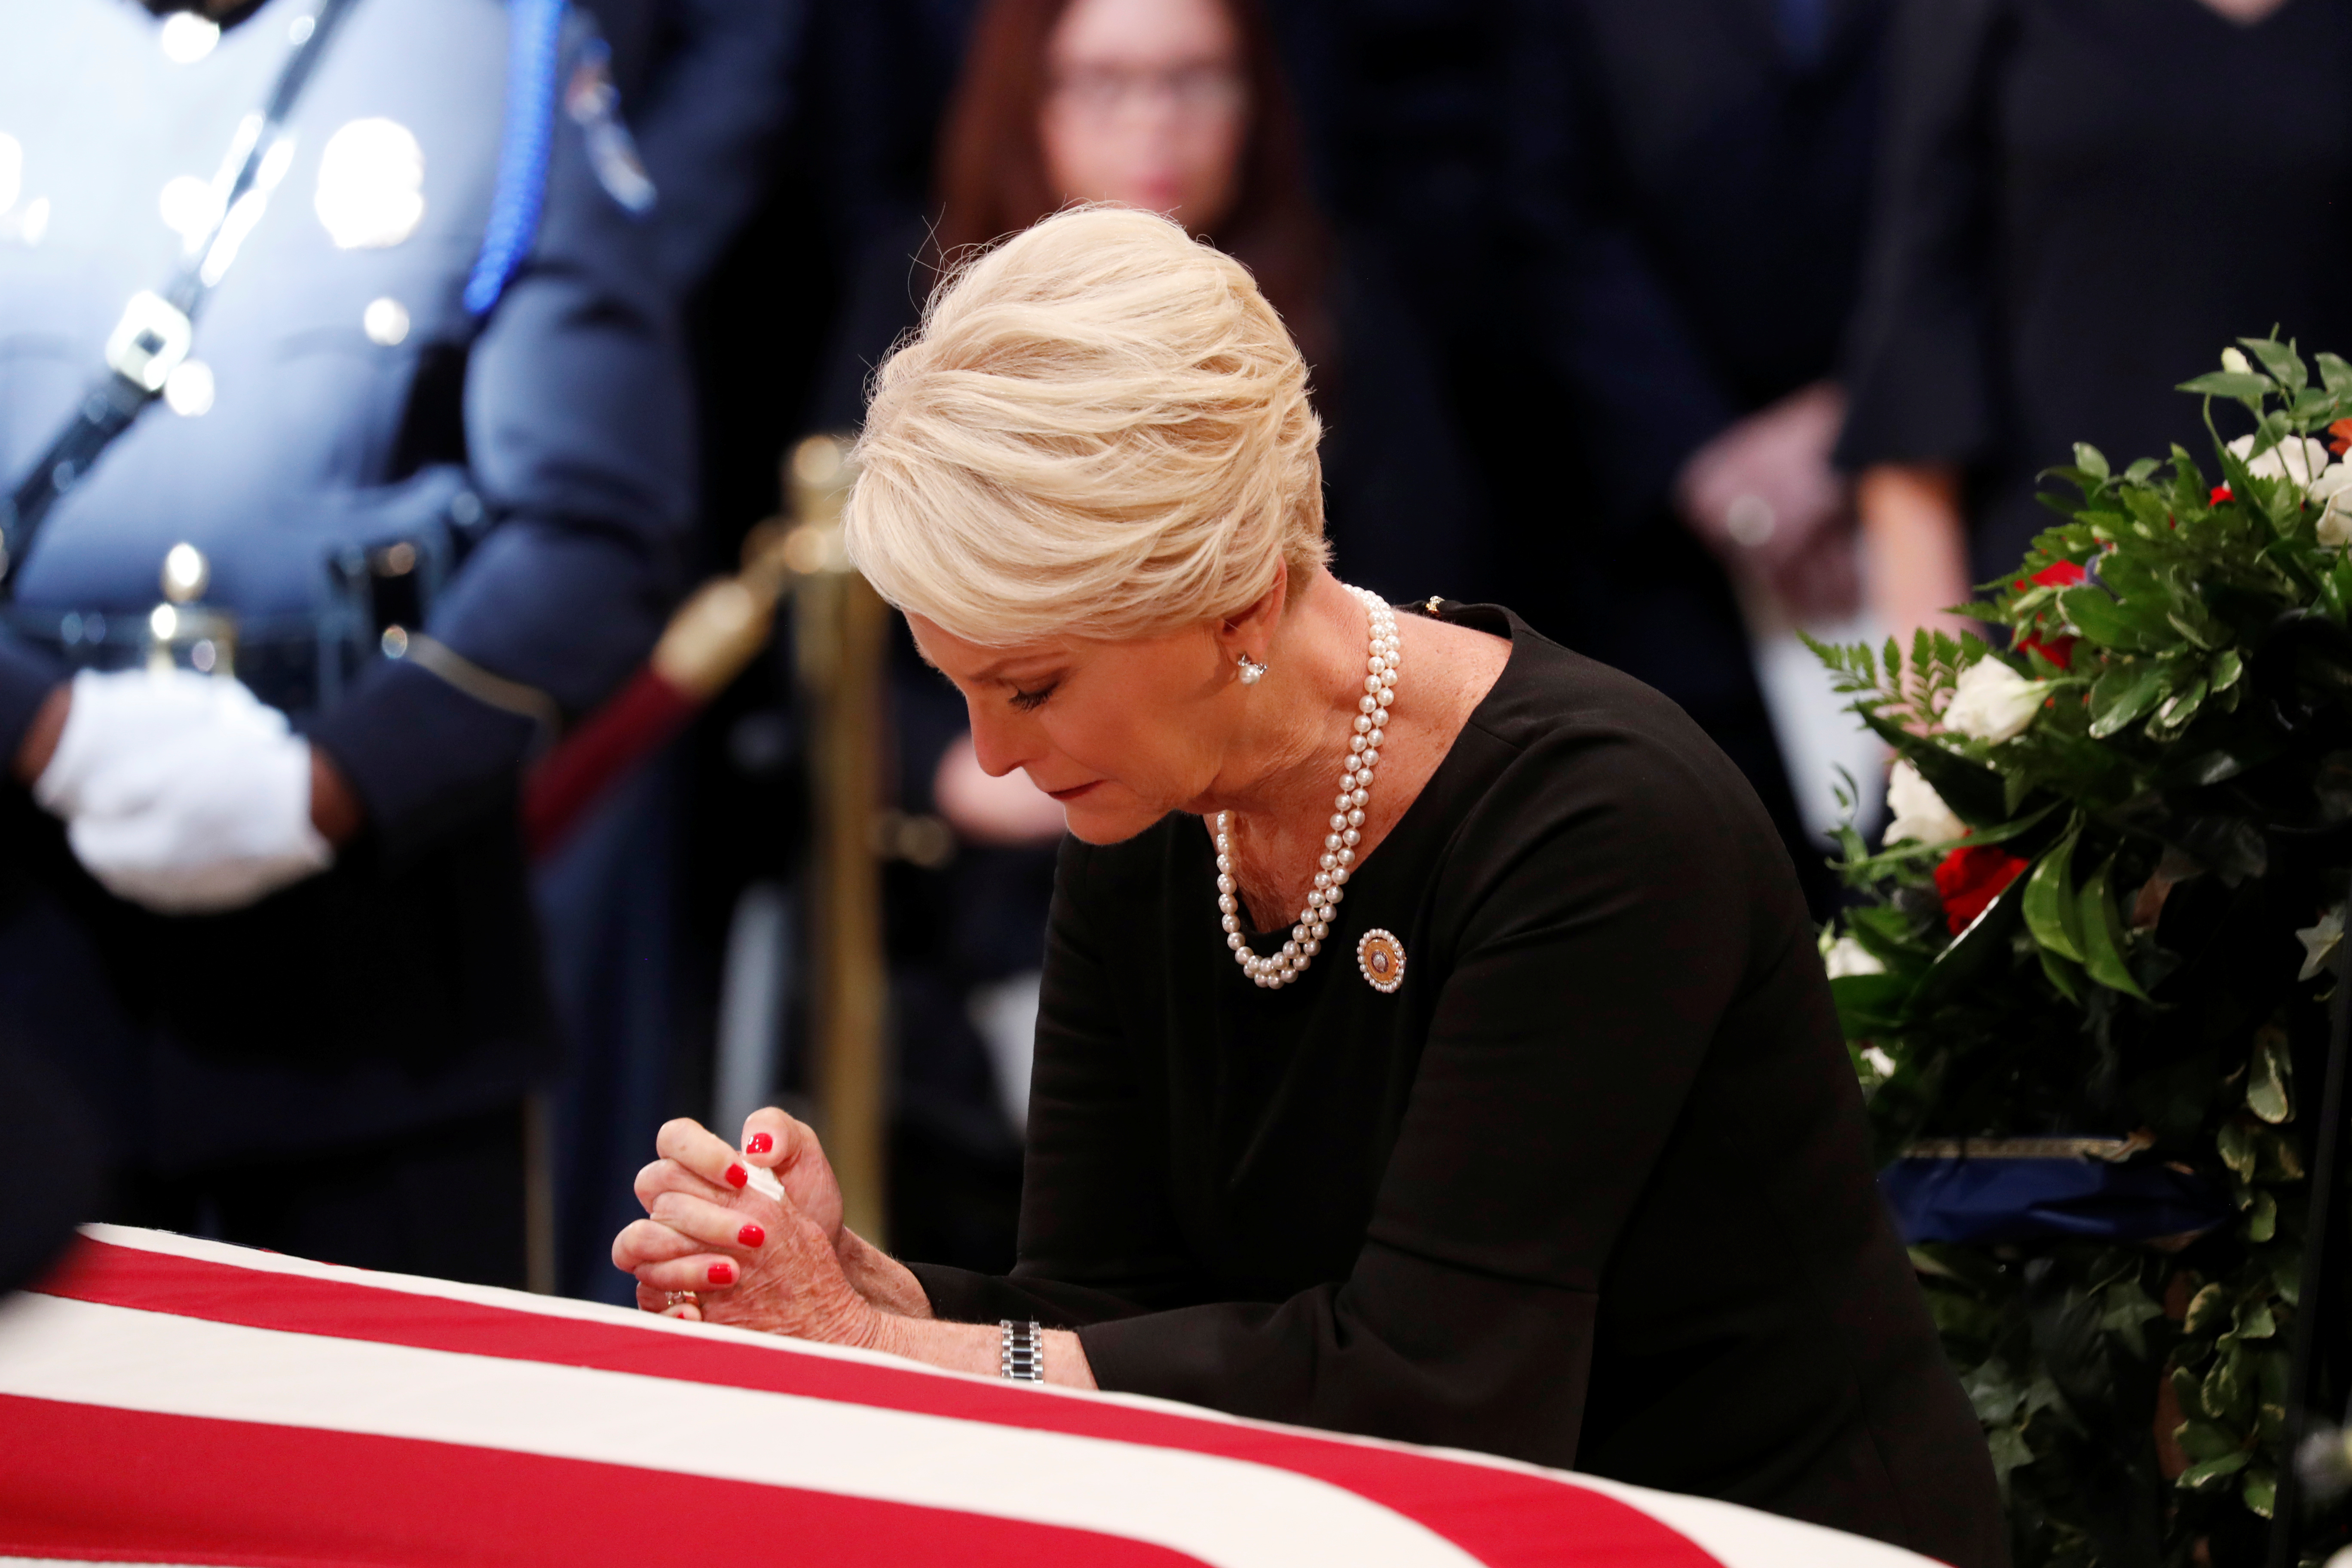 Cindy McCain, wife of late U.S. Senator John McCain, mourns at her husband's casket during ceremonies honoring Senator McCain inside the U.S. Capitol Rotunda in Washington, August 31, 2018. REUTERS/Kevin Lamarque